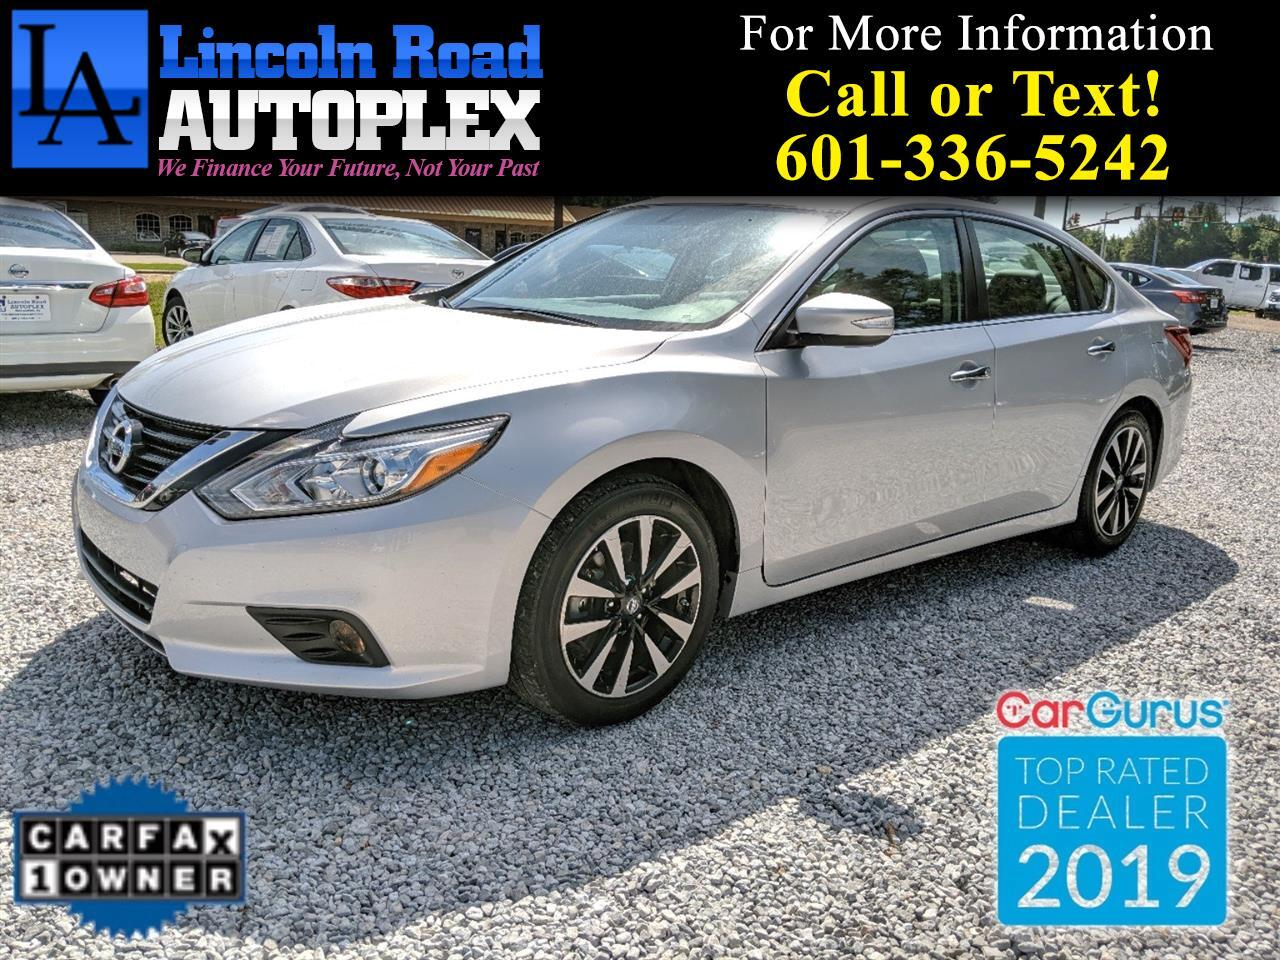 Used Cars Hattiesburg Ms >> Lincoln Road Autoplex Hattiesburg Ms New Used Cars Trucks Sales